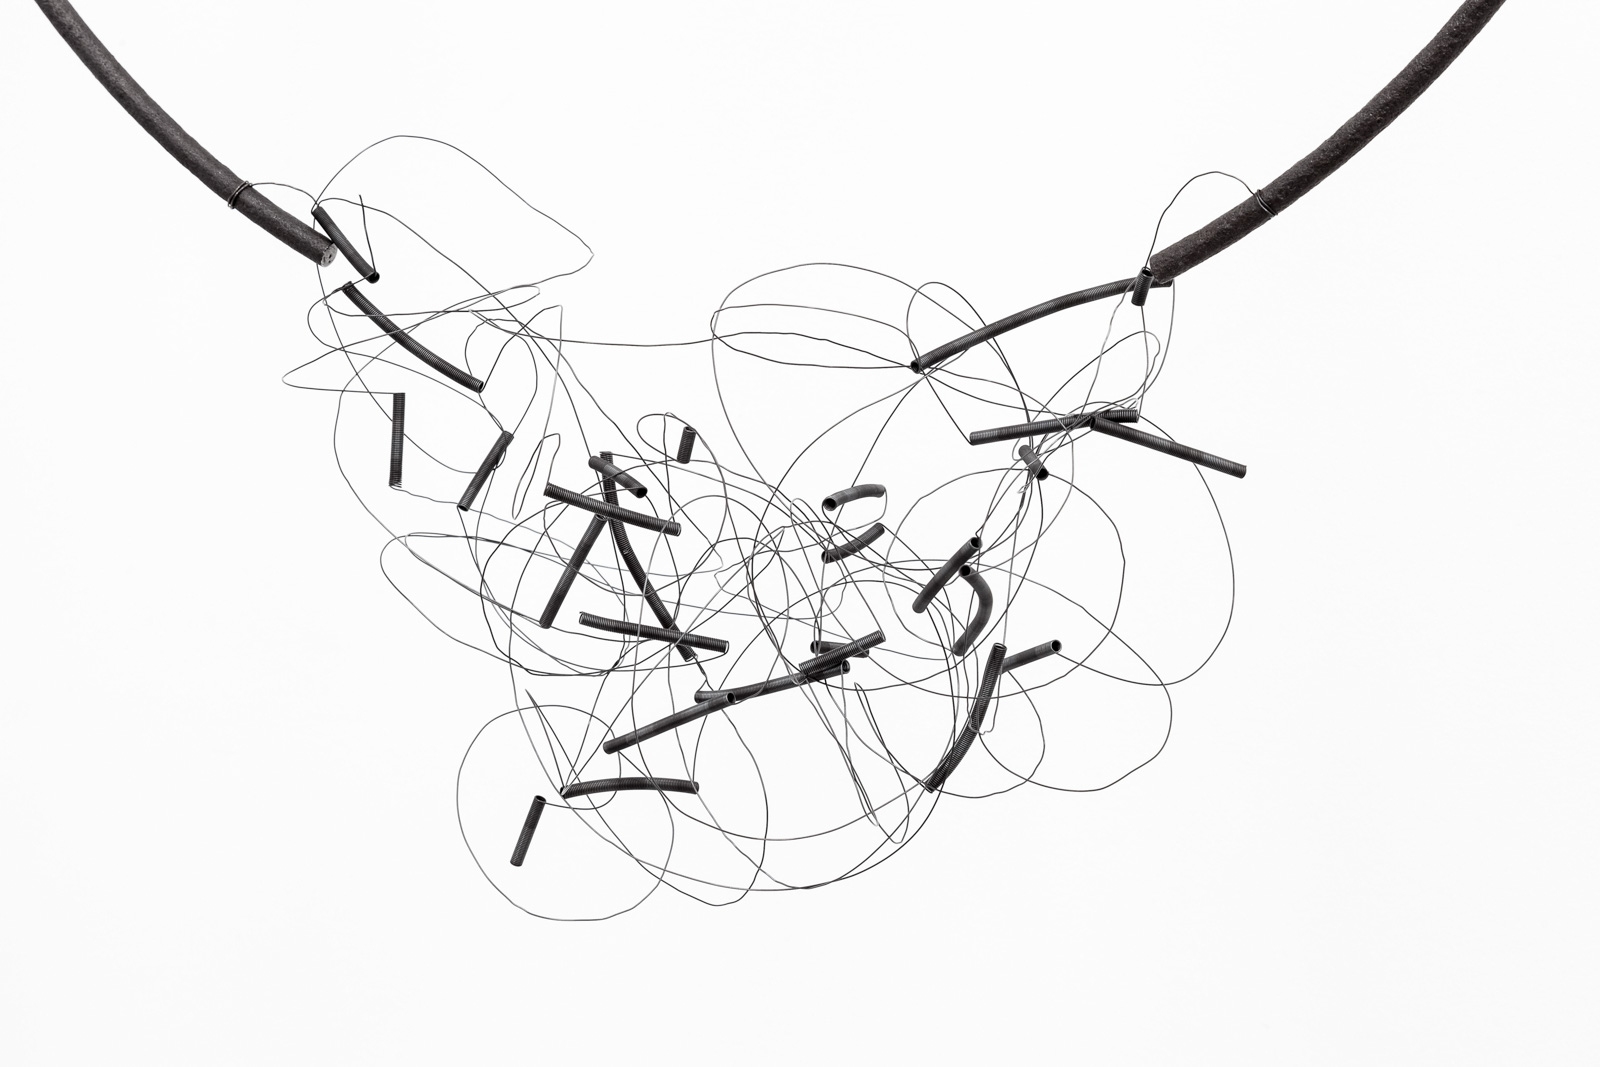 Tone Vigeland, Untitled, 2017, Steel and found iron, 85 x 67 x 35 cm (installed)